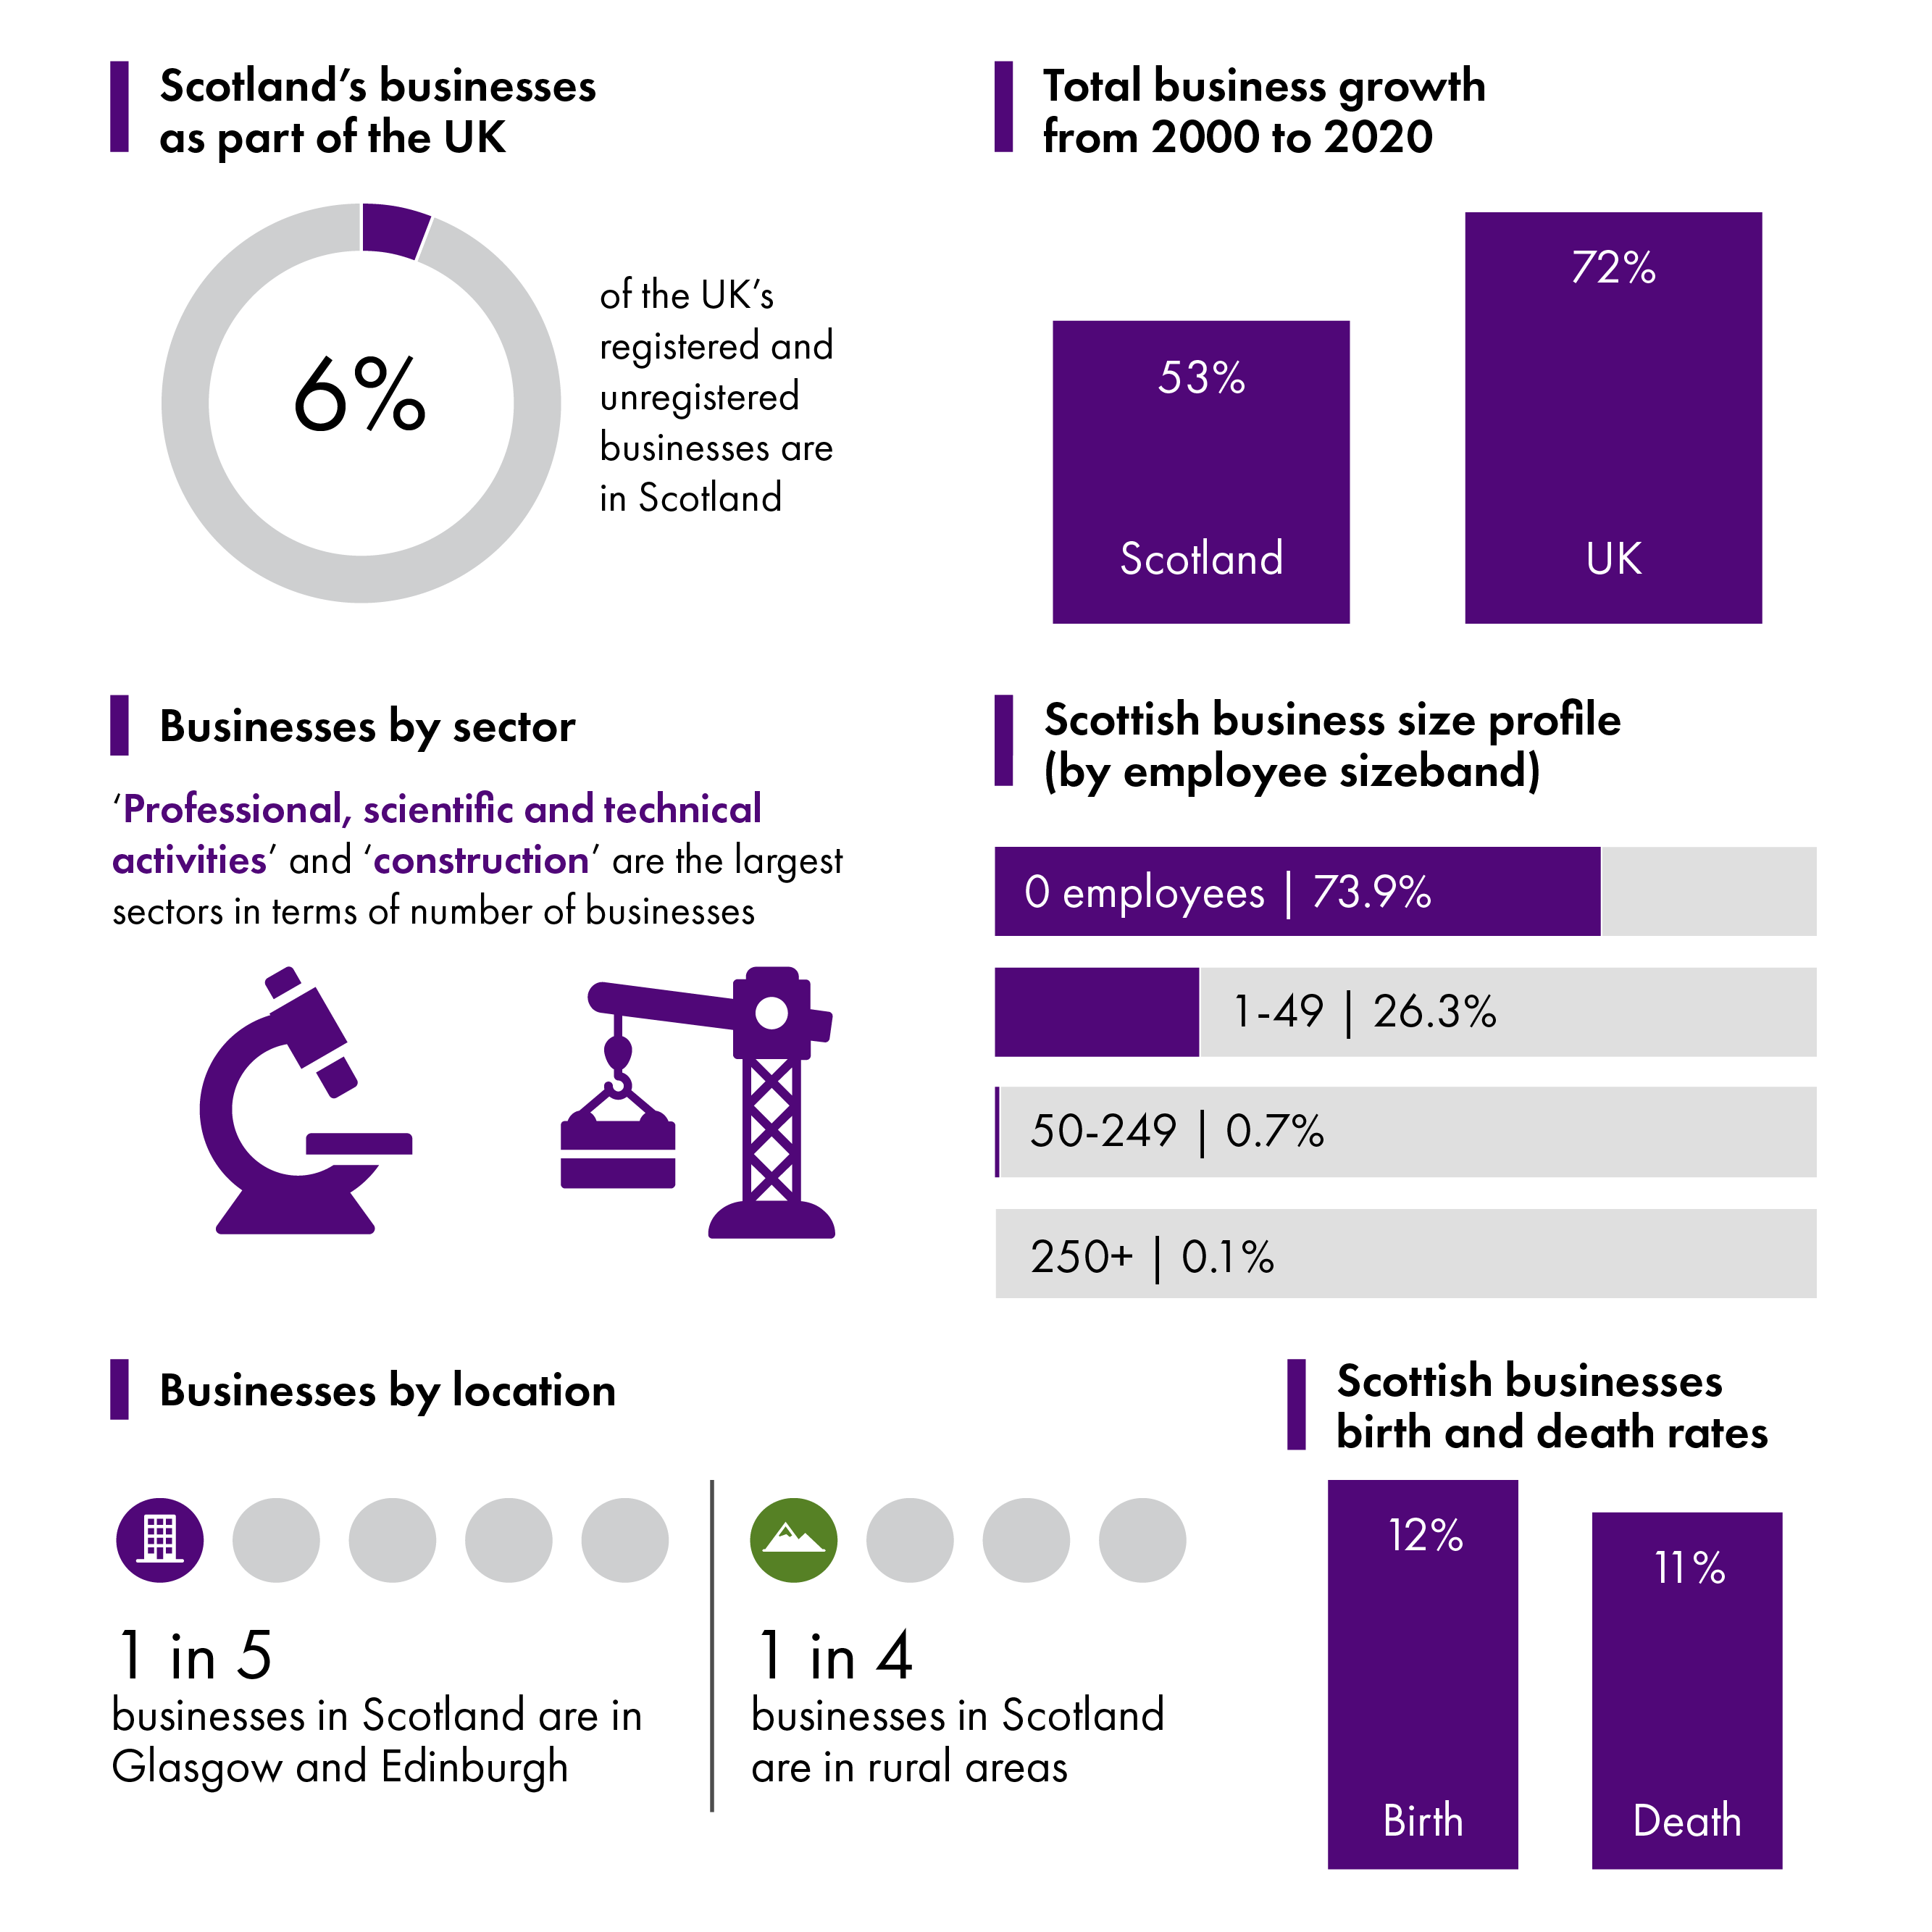 The Scottish business base grew by 53% since 2000, compared to a rate of 72% at a UK level. Scottish businesses are 6% of the UK total. The majority of Scottish businesses (74%) have no employees. One in five Scottish businesses are in Glasgow and Edinburgh.